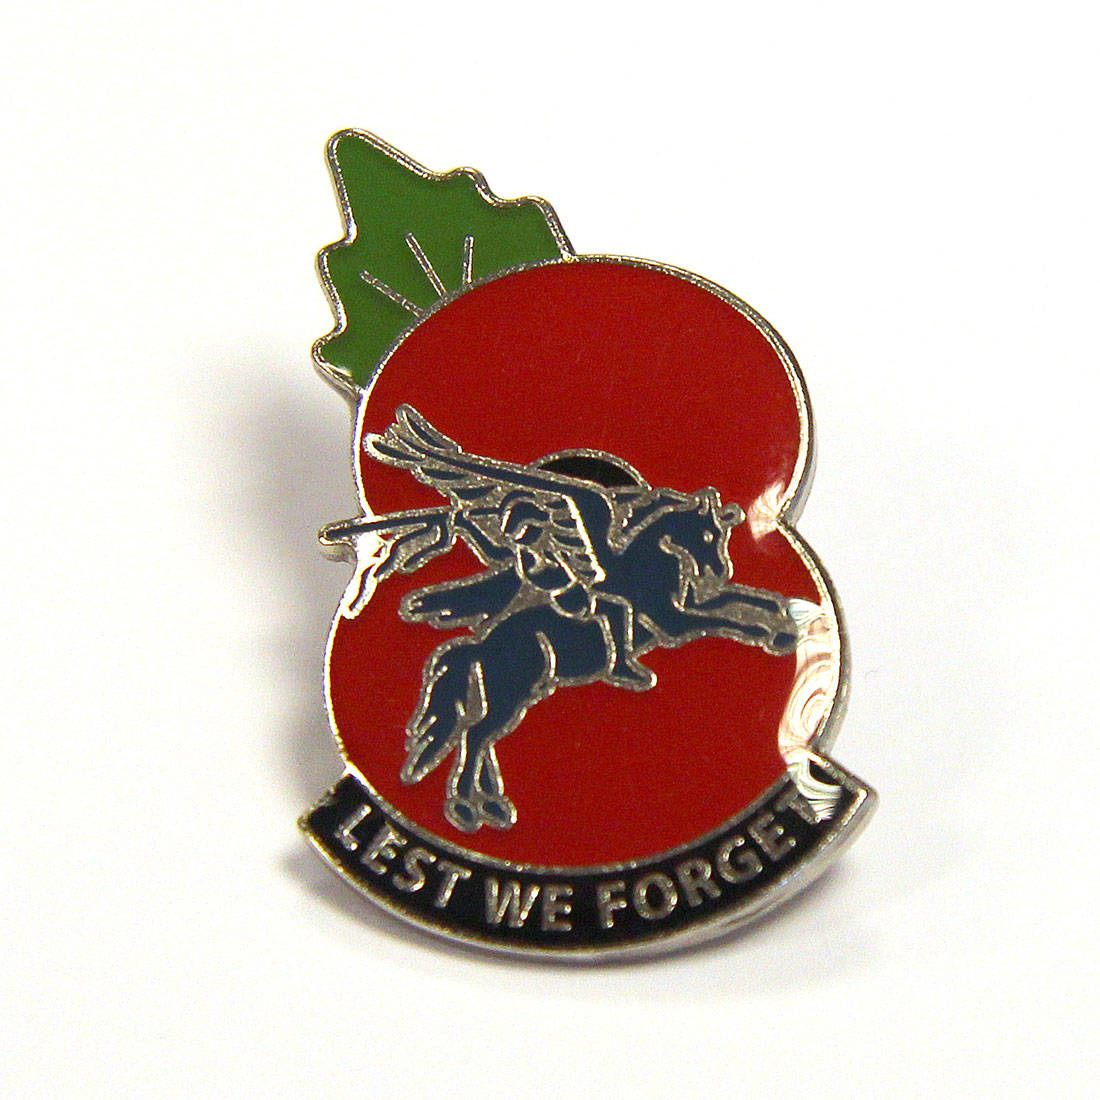 Pegasus Poppy Lapel Badge (Lest We Forget)